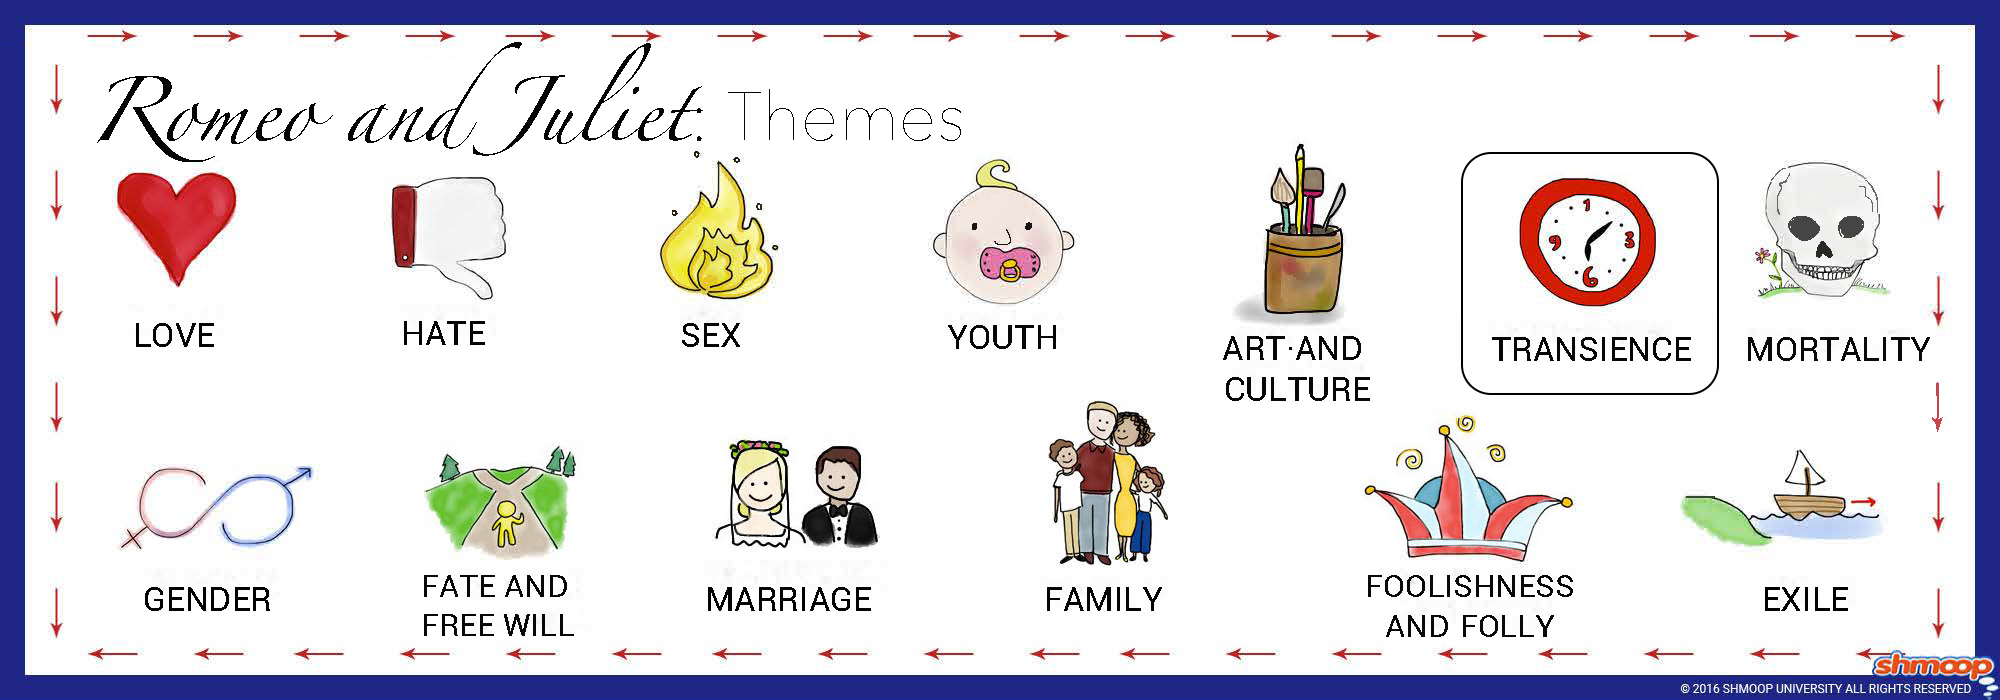 an overview of time and fate concepts in romeo and juliet a play by william shakespeare This romeo and juliet by william shakespeare lesson  that focuses on the balcony scene from romeo and juliet  and overview to shakespeare, .